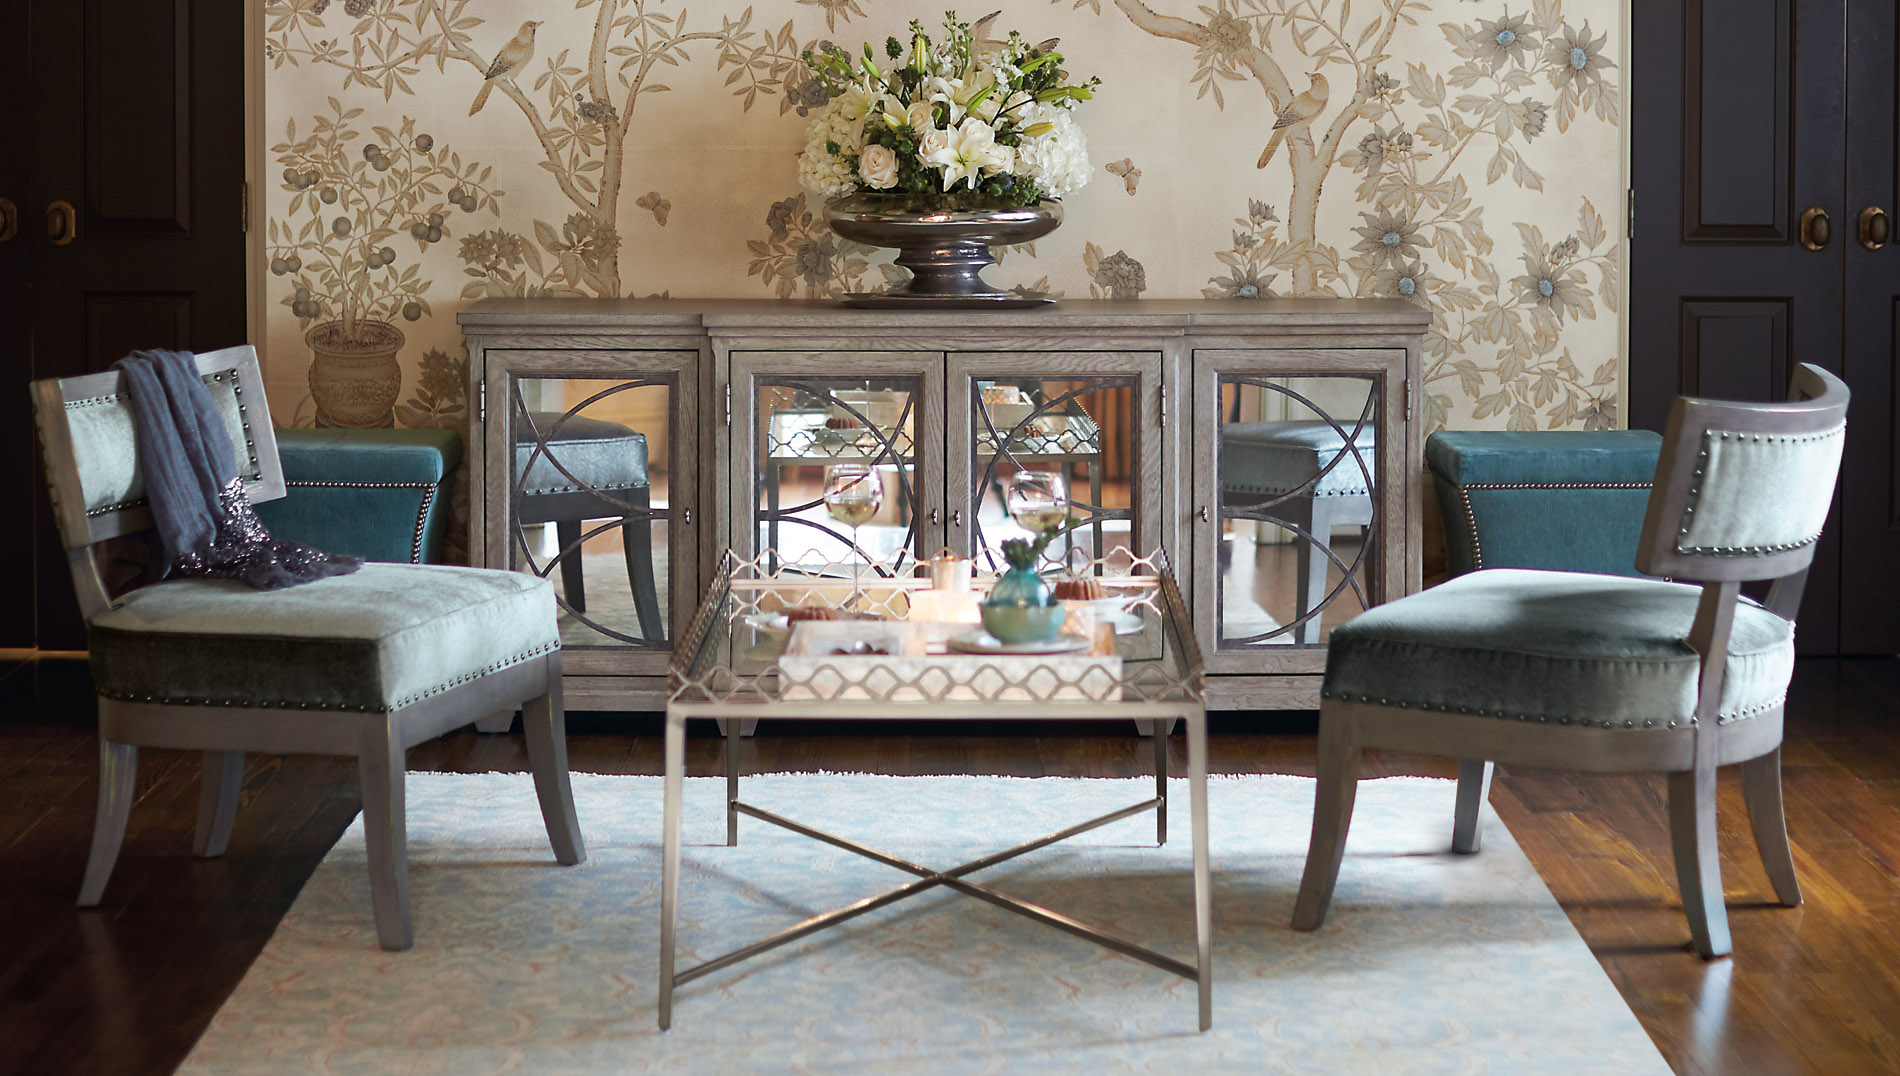 Bernhardt Marquesa Collection – Shop at LuxDeco.com now